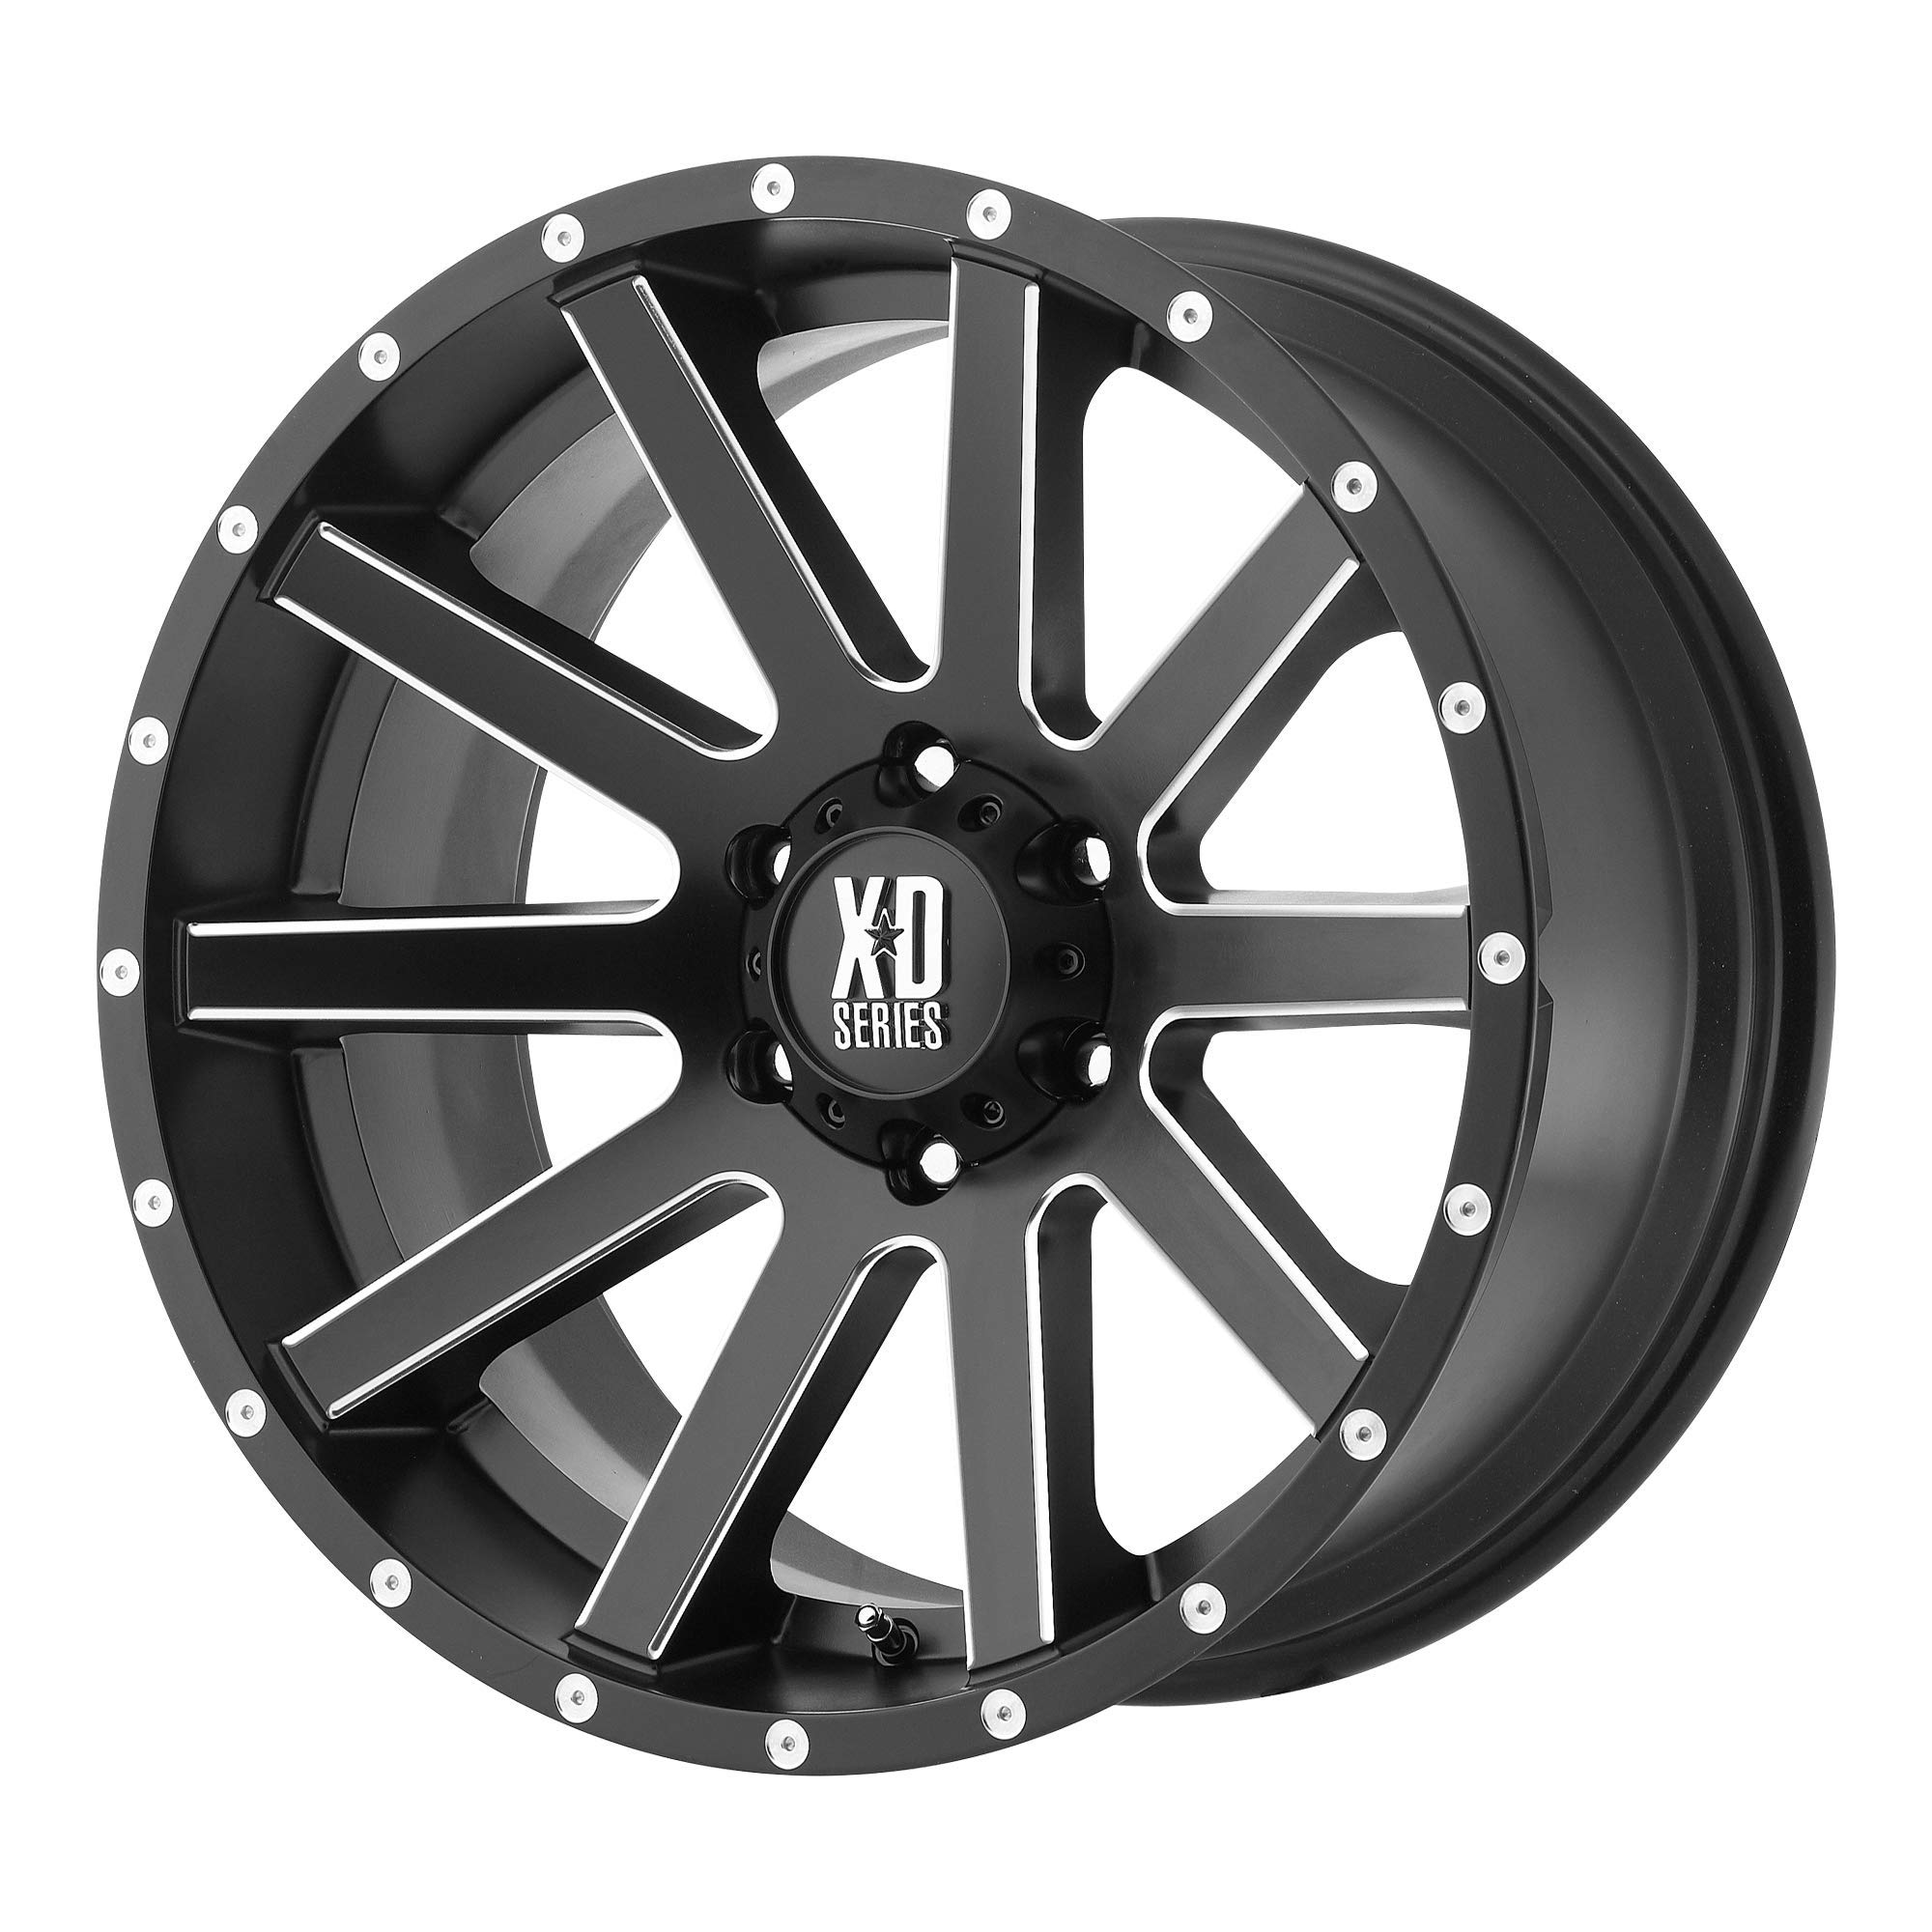 Moto Metal MO970 Gloss Black Wheel Machined With Milled Accents 17x9//6x135,139.7mm, -12mm offset